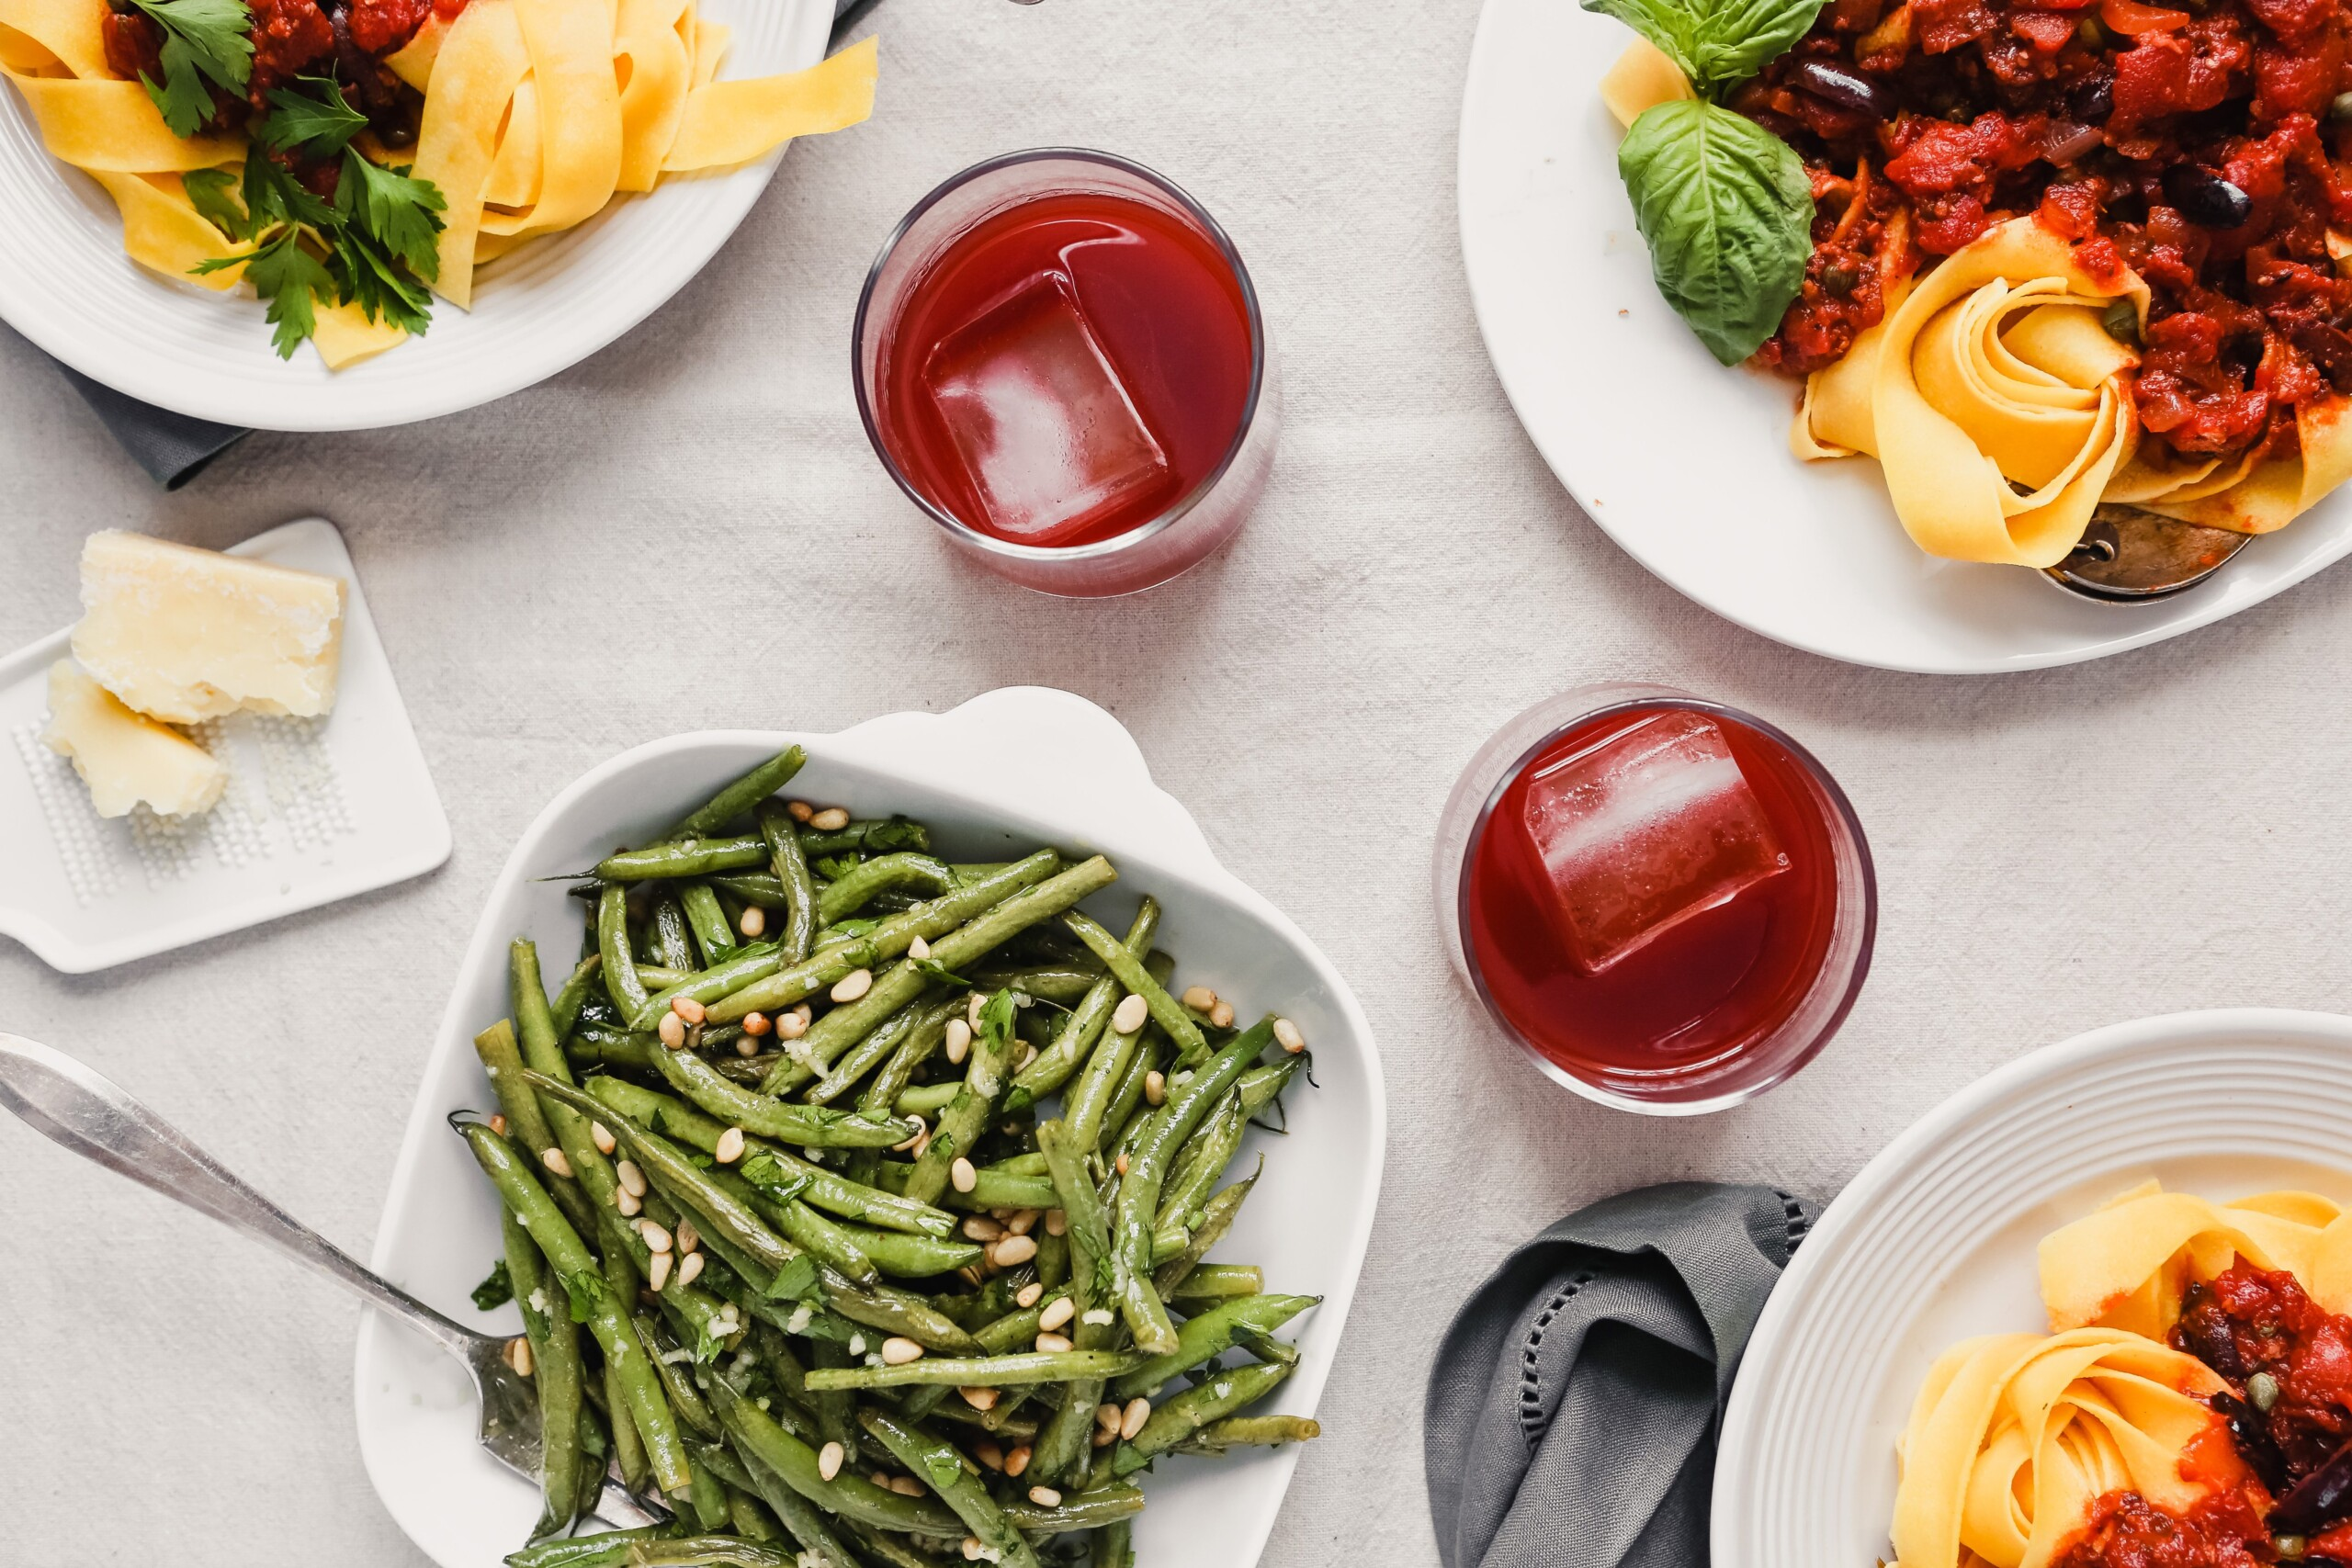 Photograph of an Italian dinner spread, green beans in a white bowl, glasses of Negroni and plates of pasta with red sauce